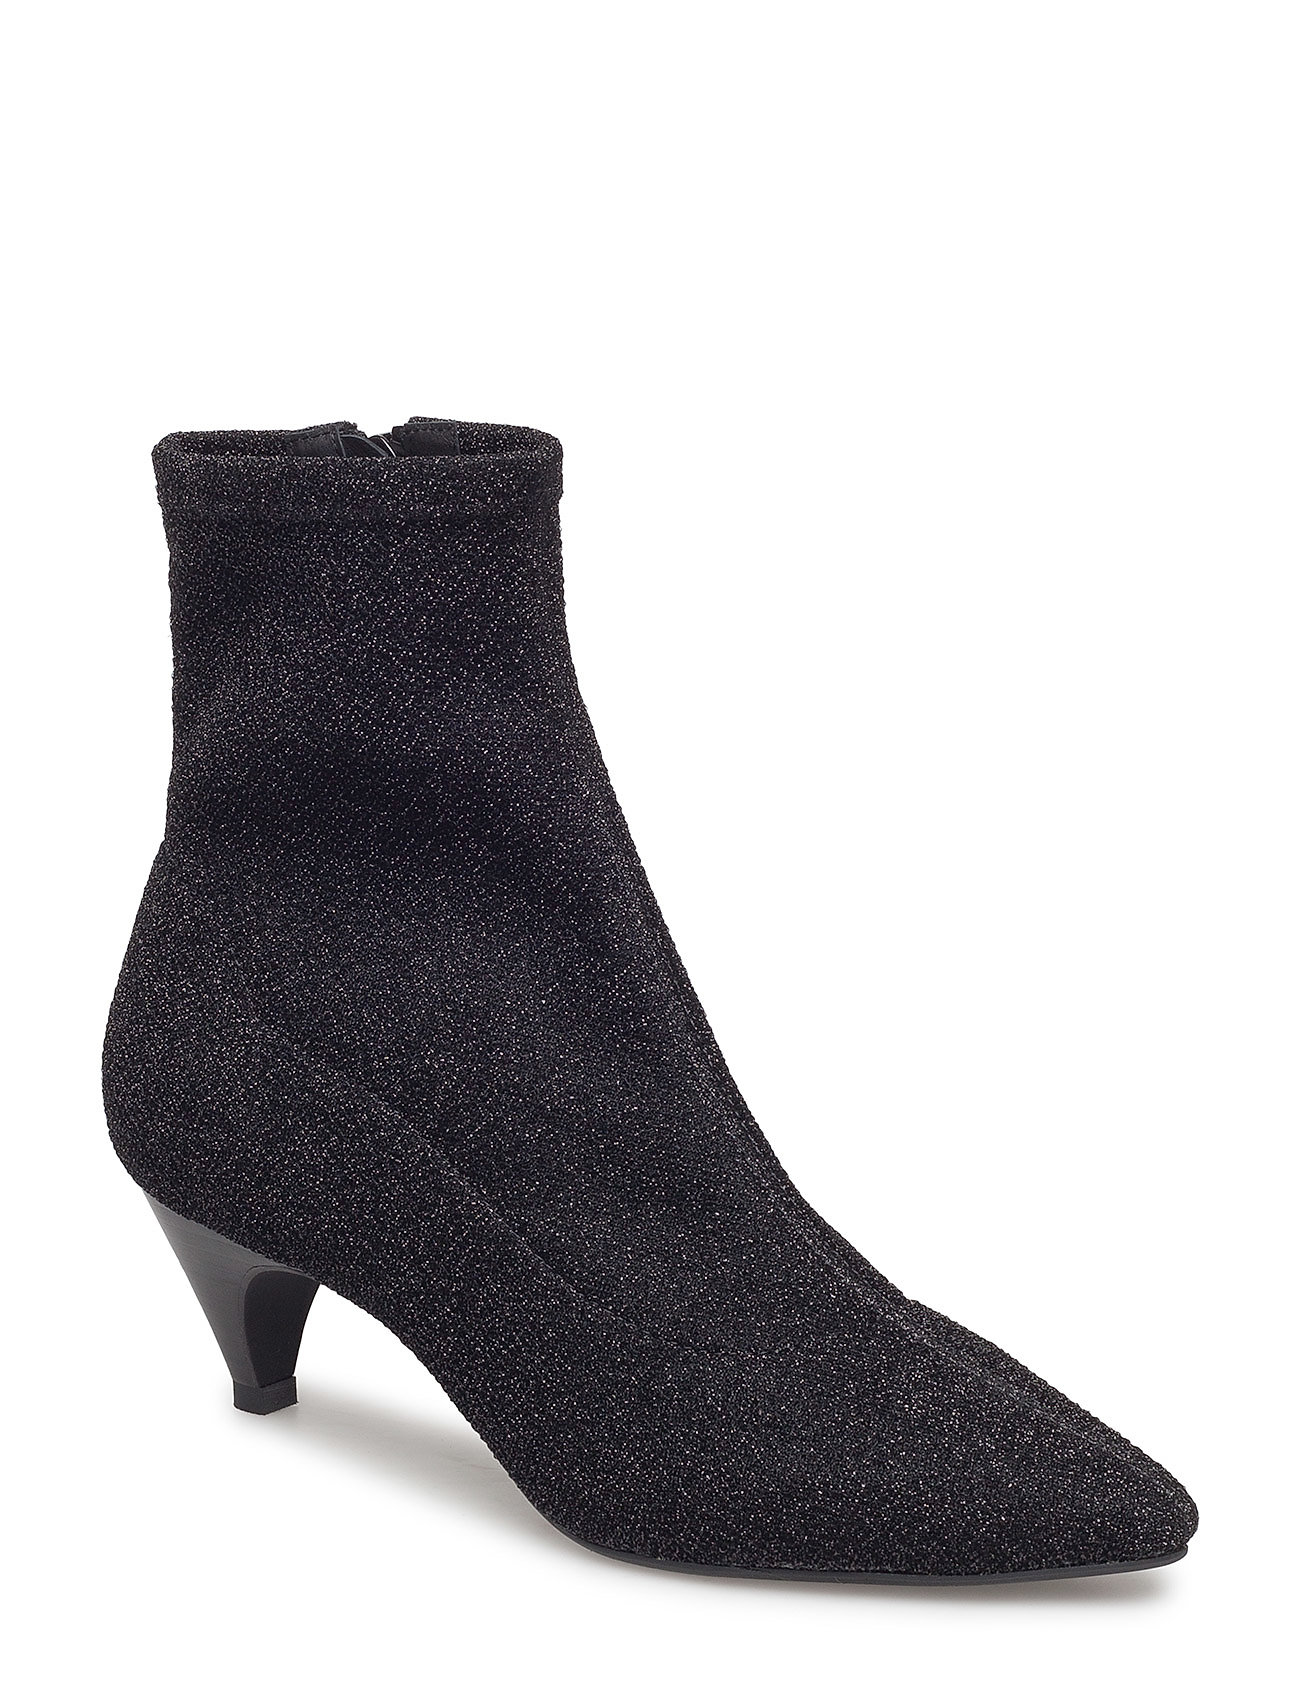 Image of Boot High Textile Shoes Boots Ankle Boots Ankle Boots With Heel Sort Sofie Schnoor (3067517865)